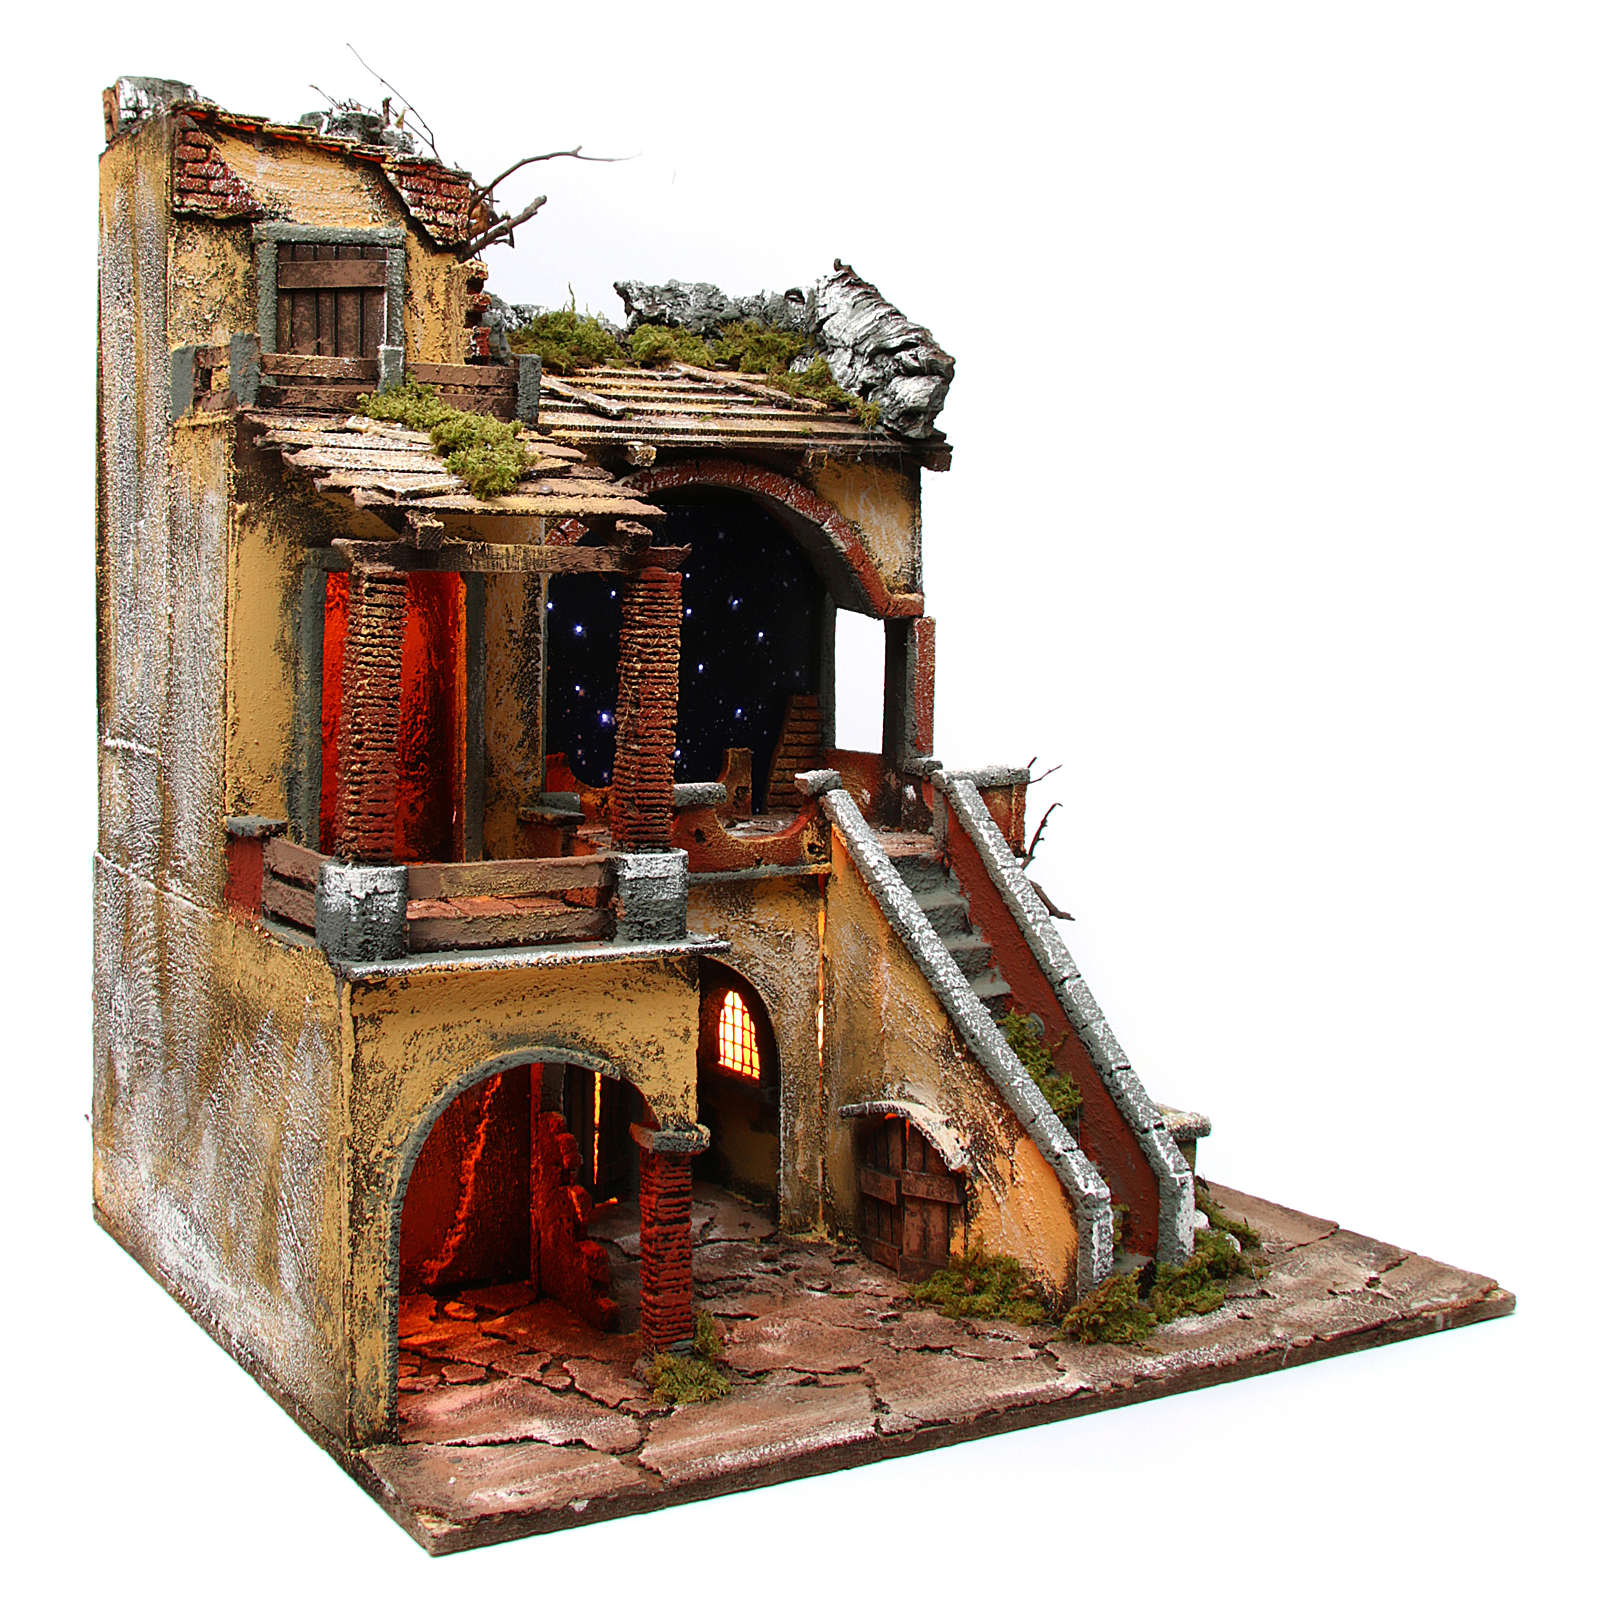 Village setting with starry sky and water mill for Neapolitan Nativity Scene 10-12 cm, 60x50x66 4